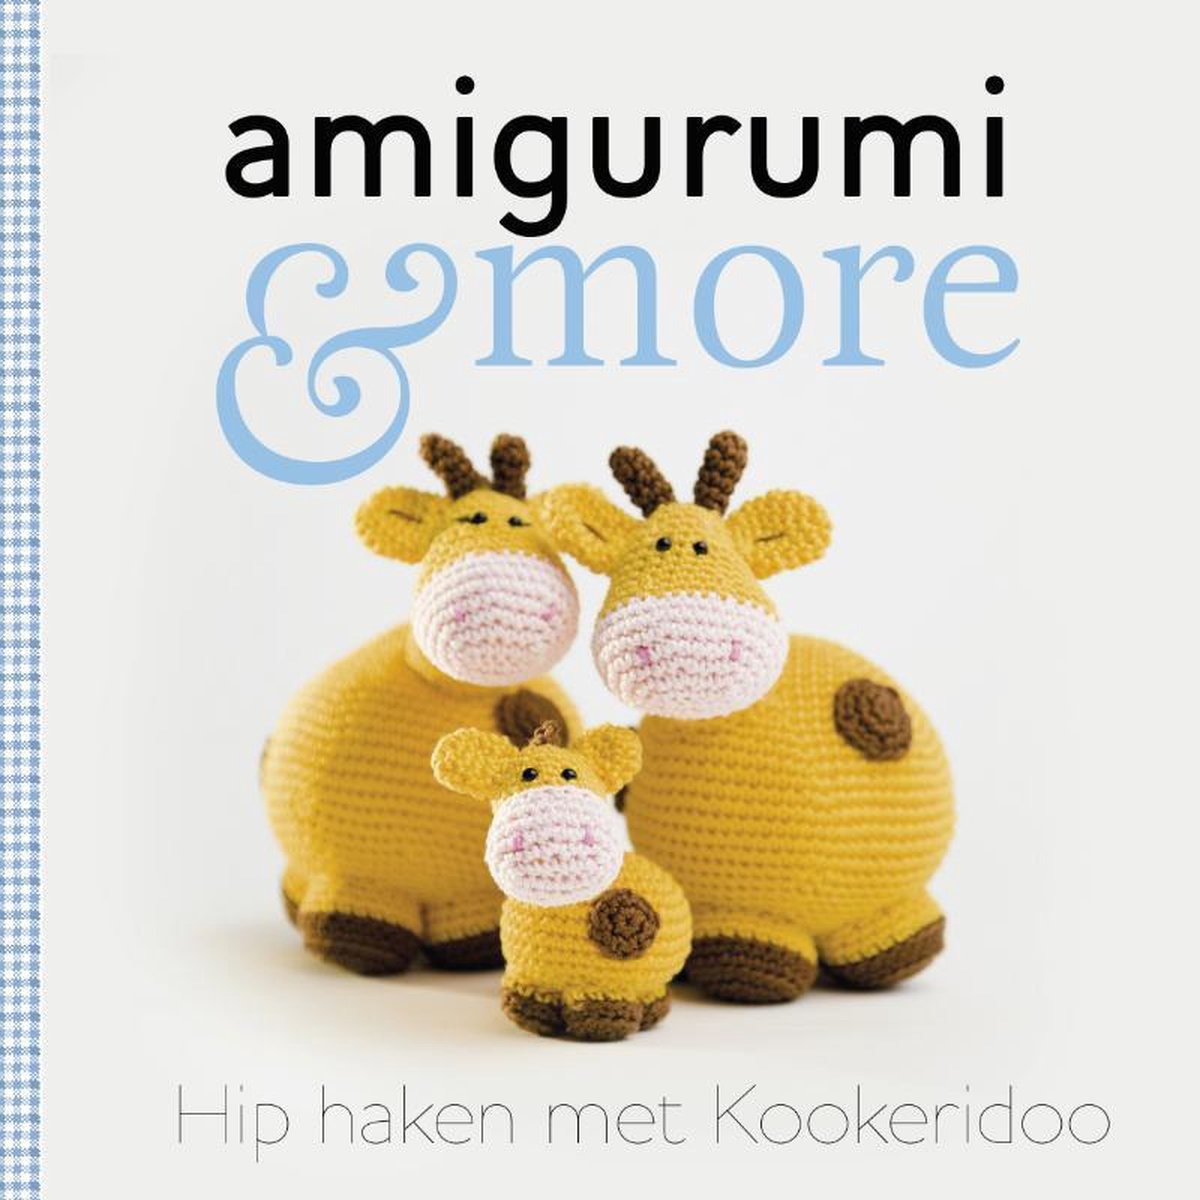 Mimi the konijn Amigurumi haakpatroon Nederlands - YouTube | 1200x1200